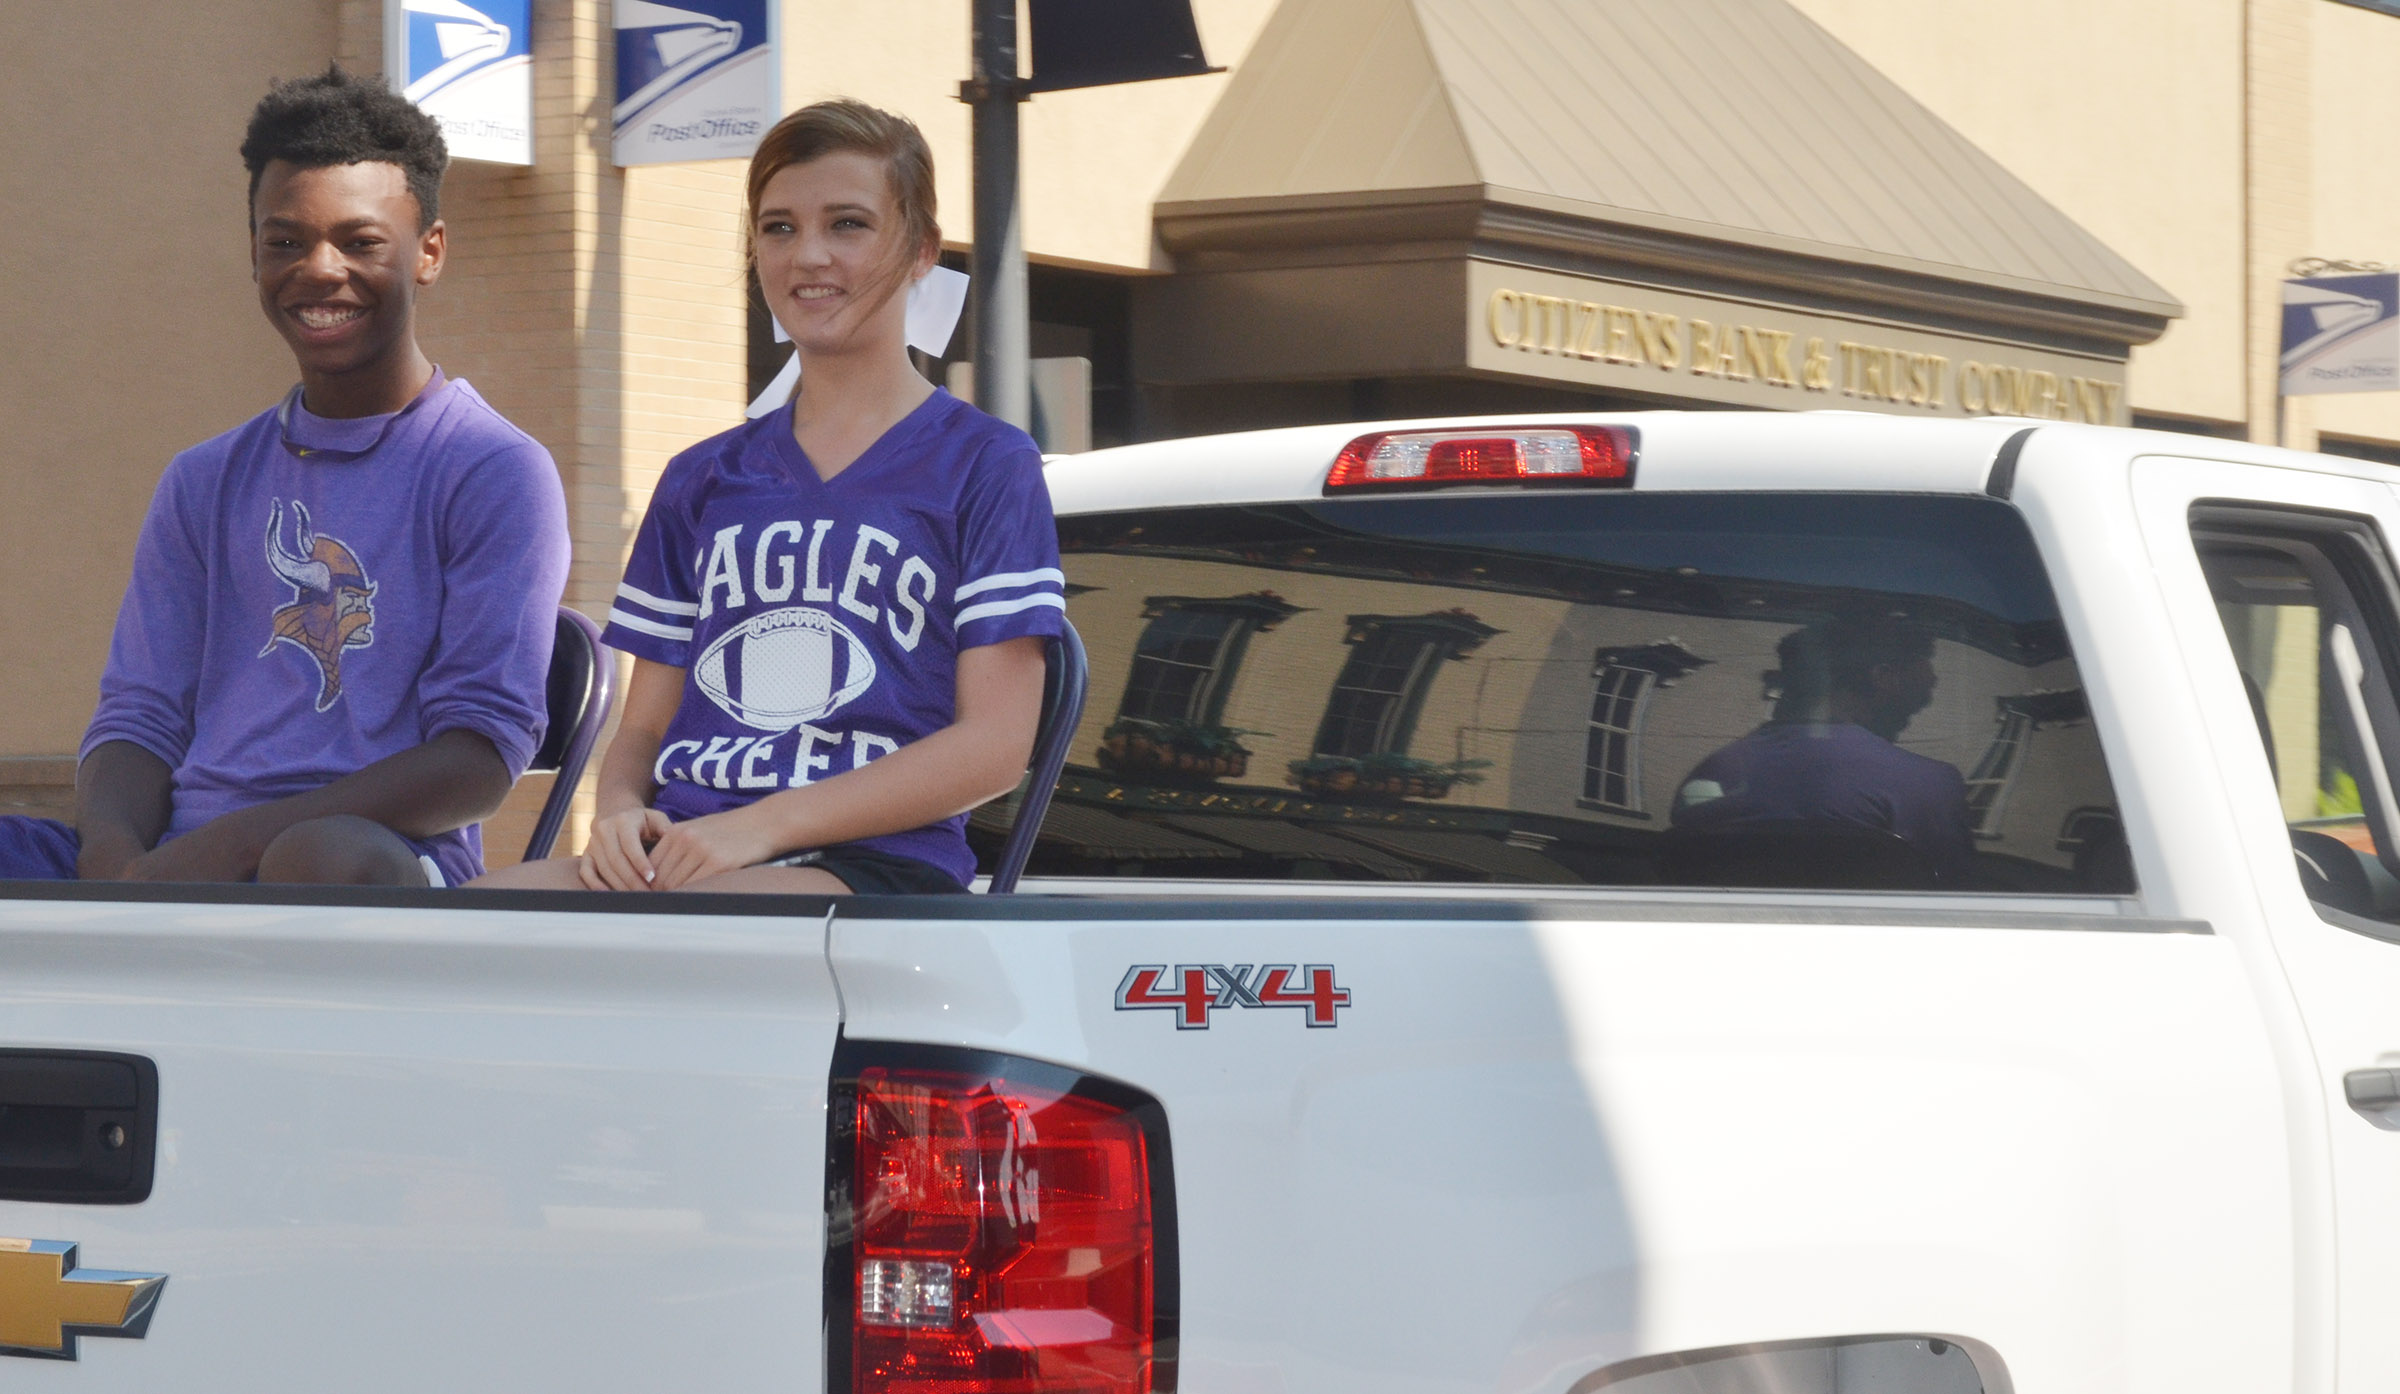 CHS freshman homecoming canddiates Saevon Buckner and Carly Adams ride in the parade.